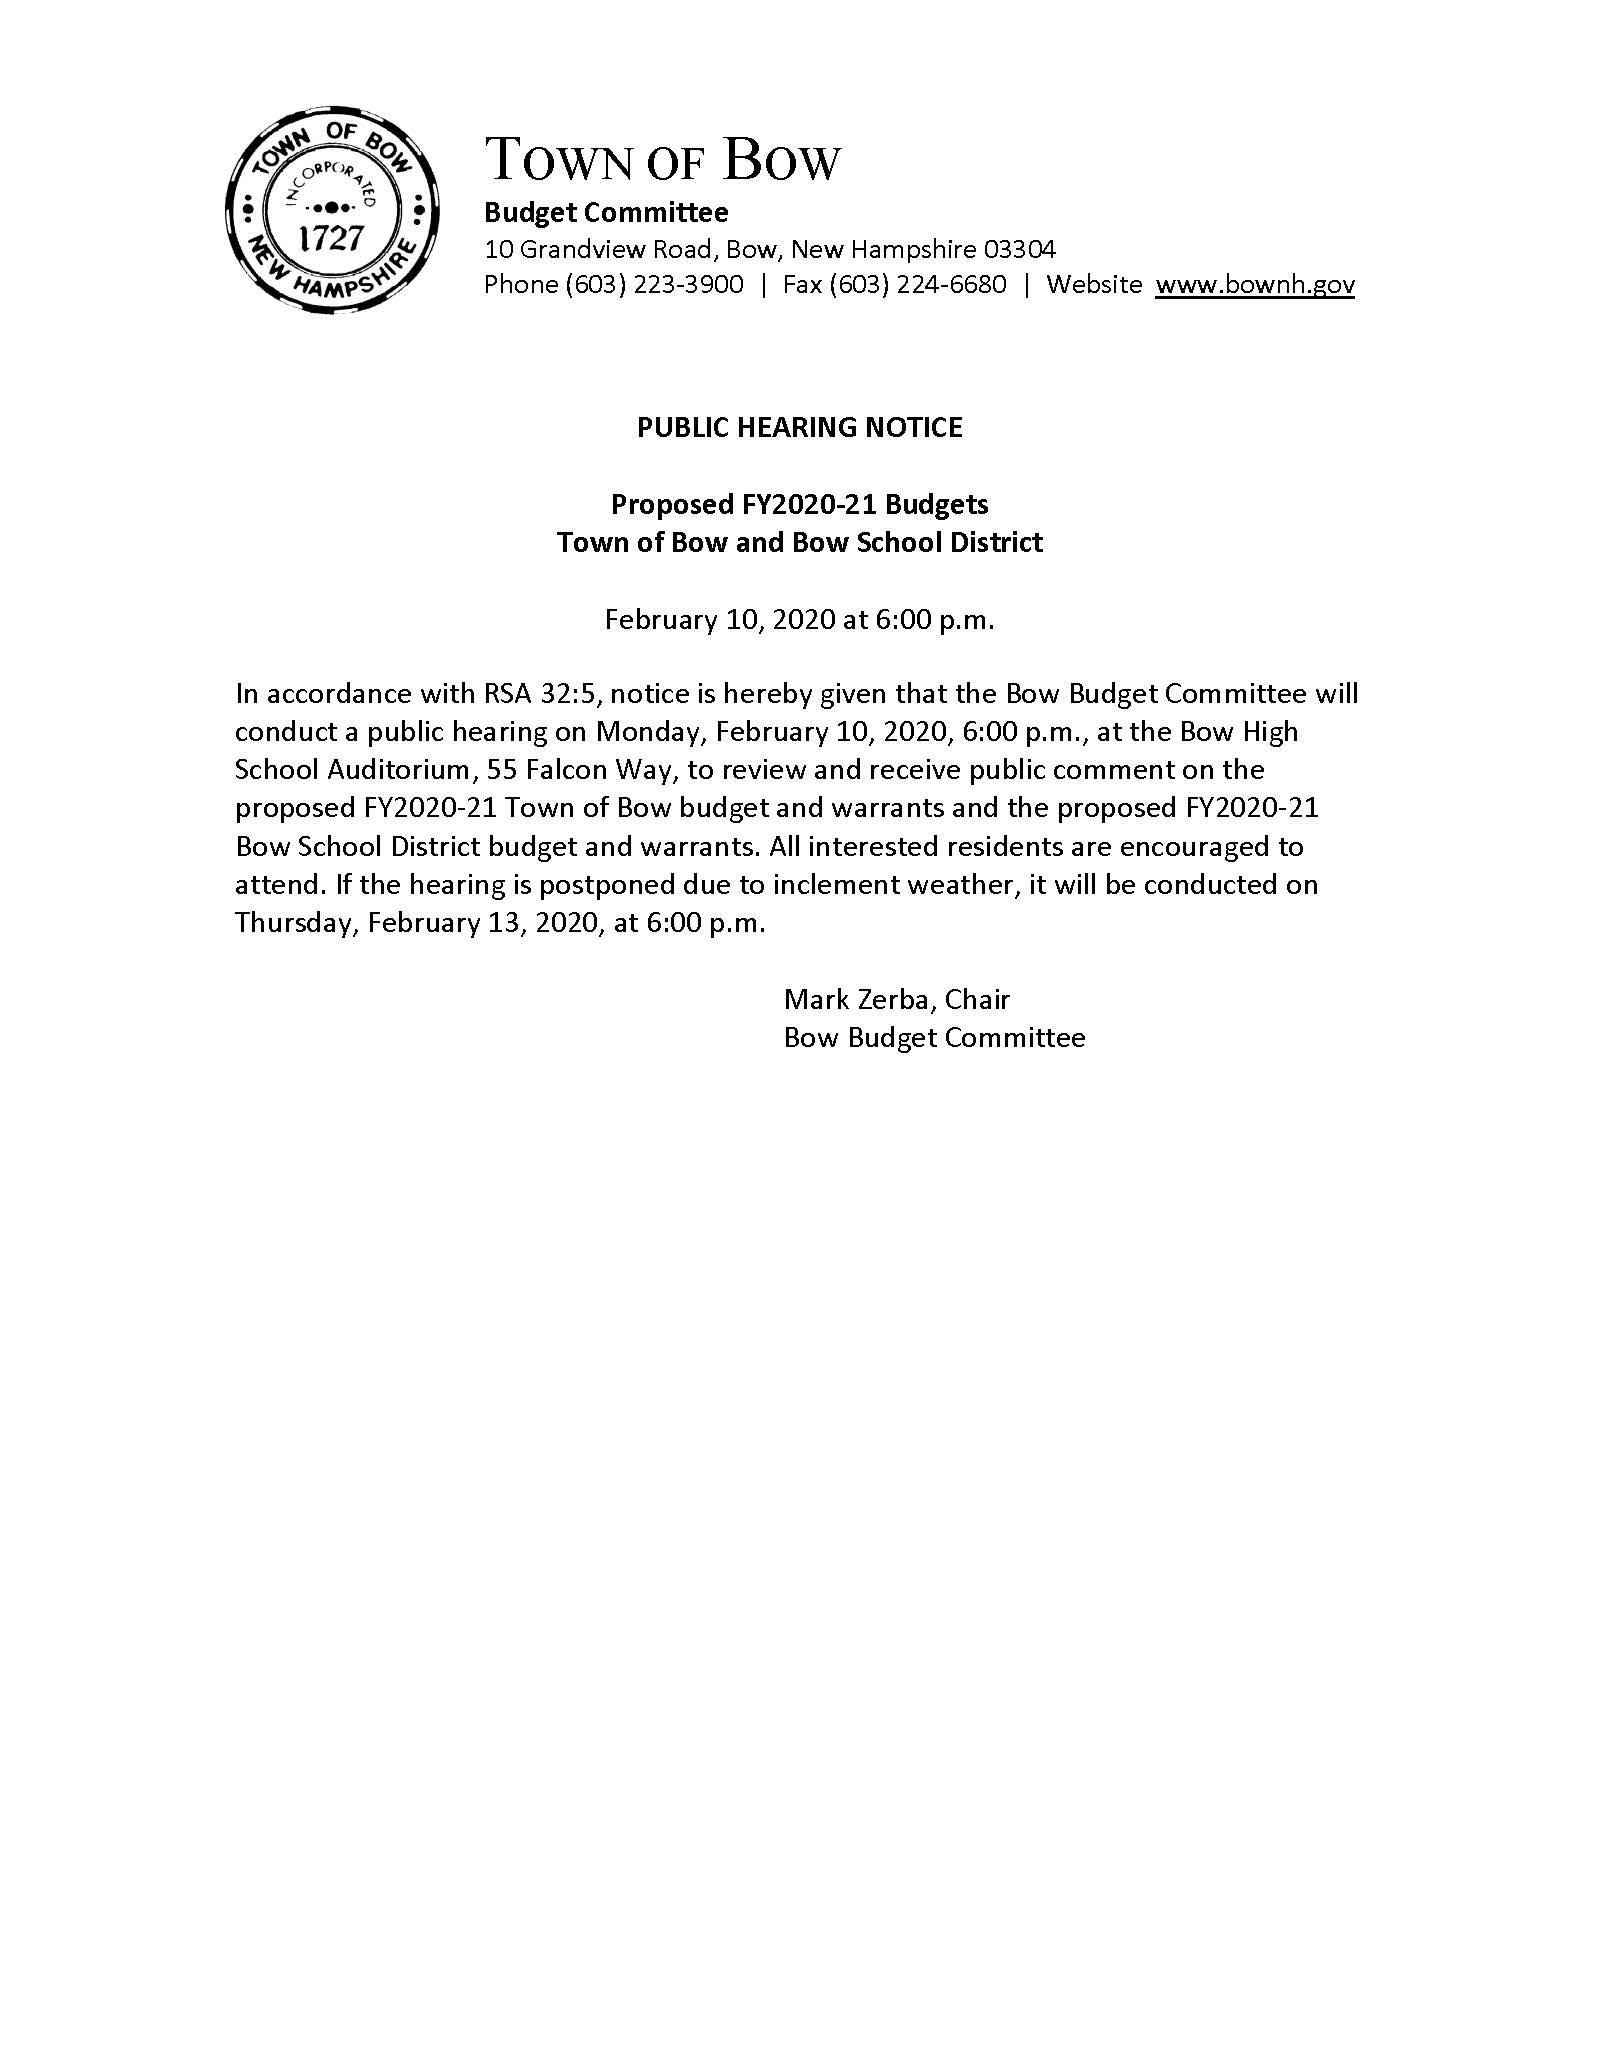 FY2020-21 Budget Hearing Notice